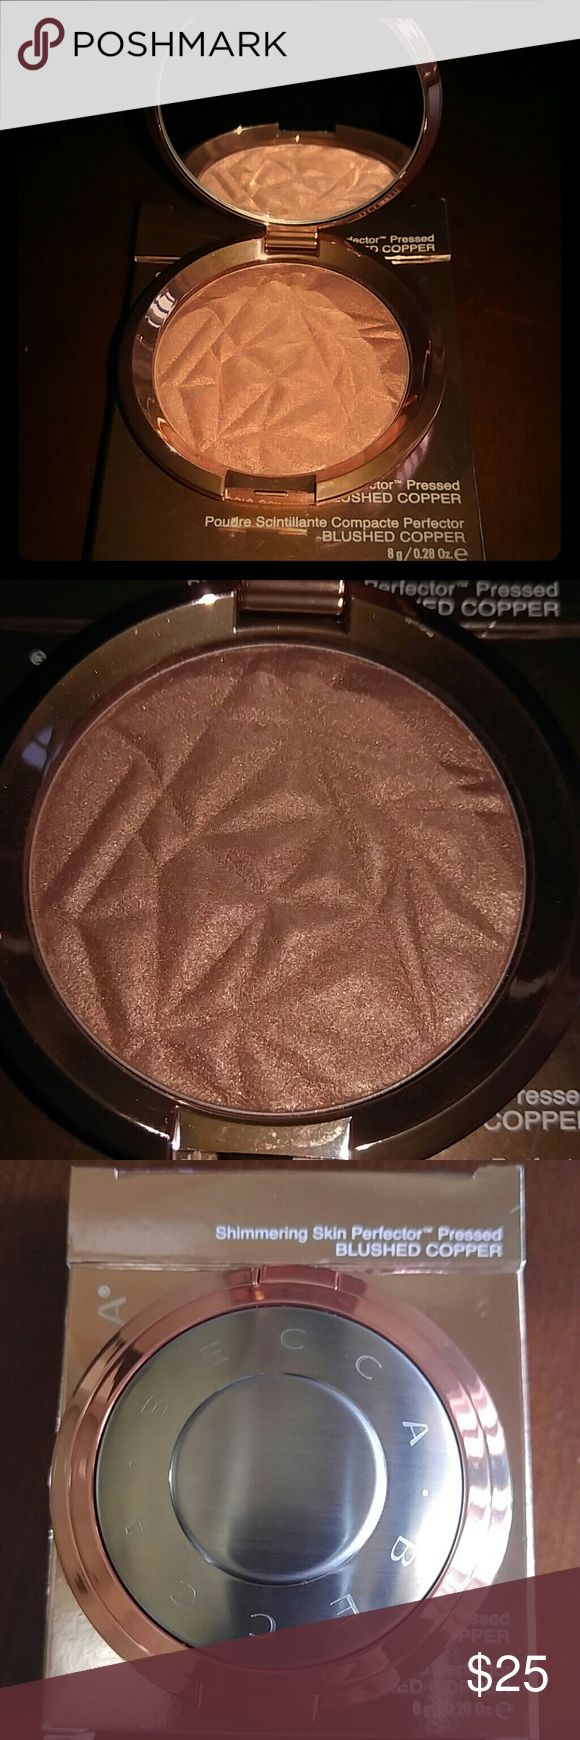 BECCA Skin Perfector Pressed Blushed Copper A creamy luminizing powder that veils skin in a soft pearlized glow with a lustrous velvet finish.   It may not be new but I only used it twice. It still comes in the original box/packaging. BECCA Makeup Luminizer